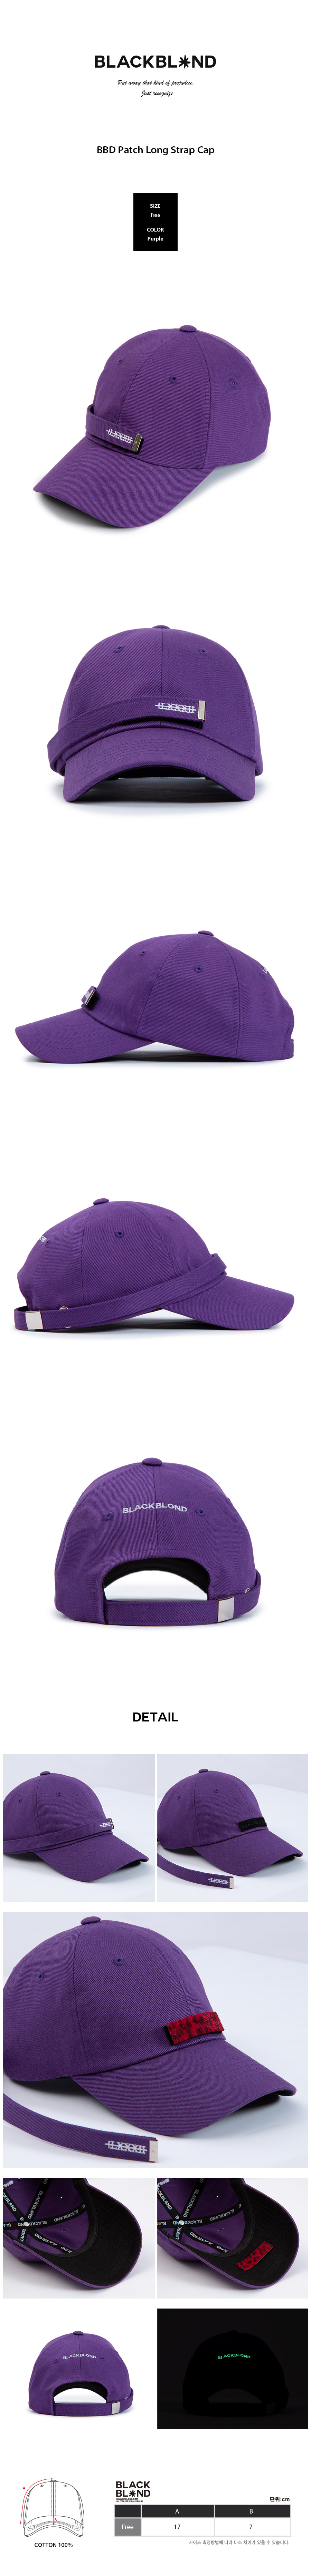 BBD-Patch-Long-Strap-Cap-%28Purple%29.jpg